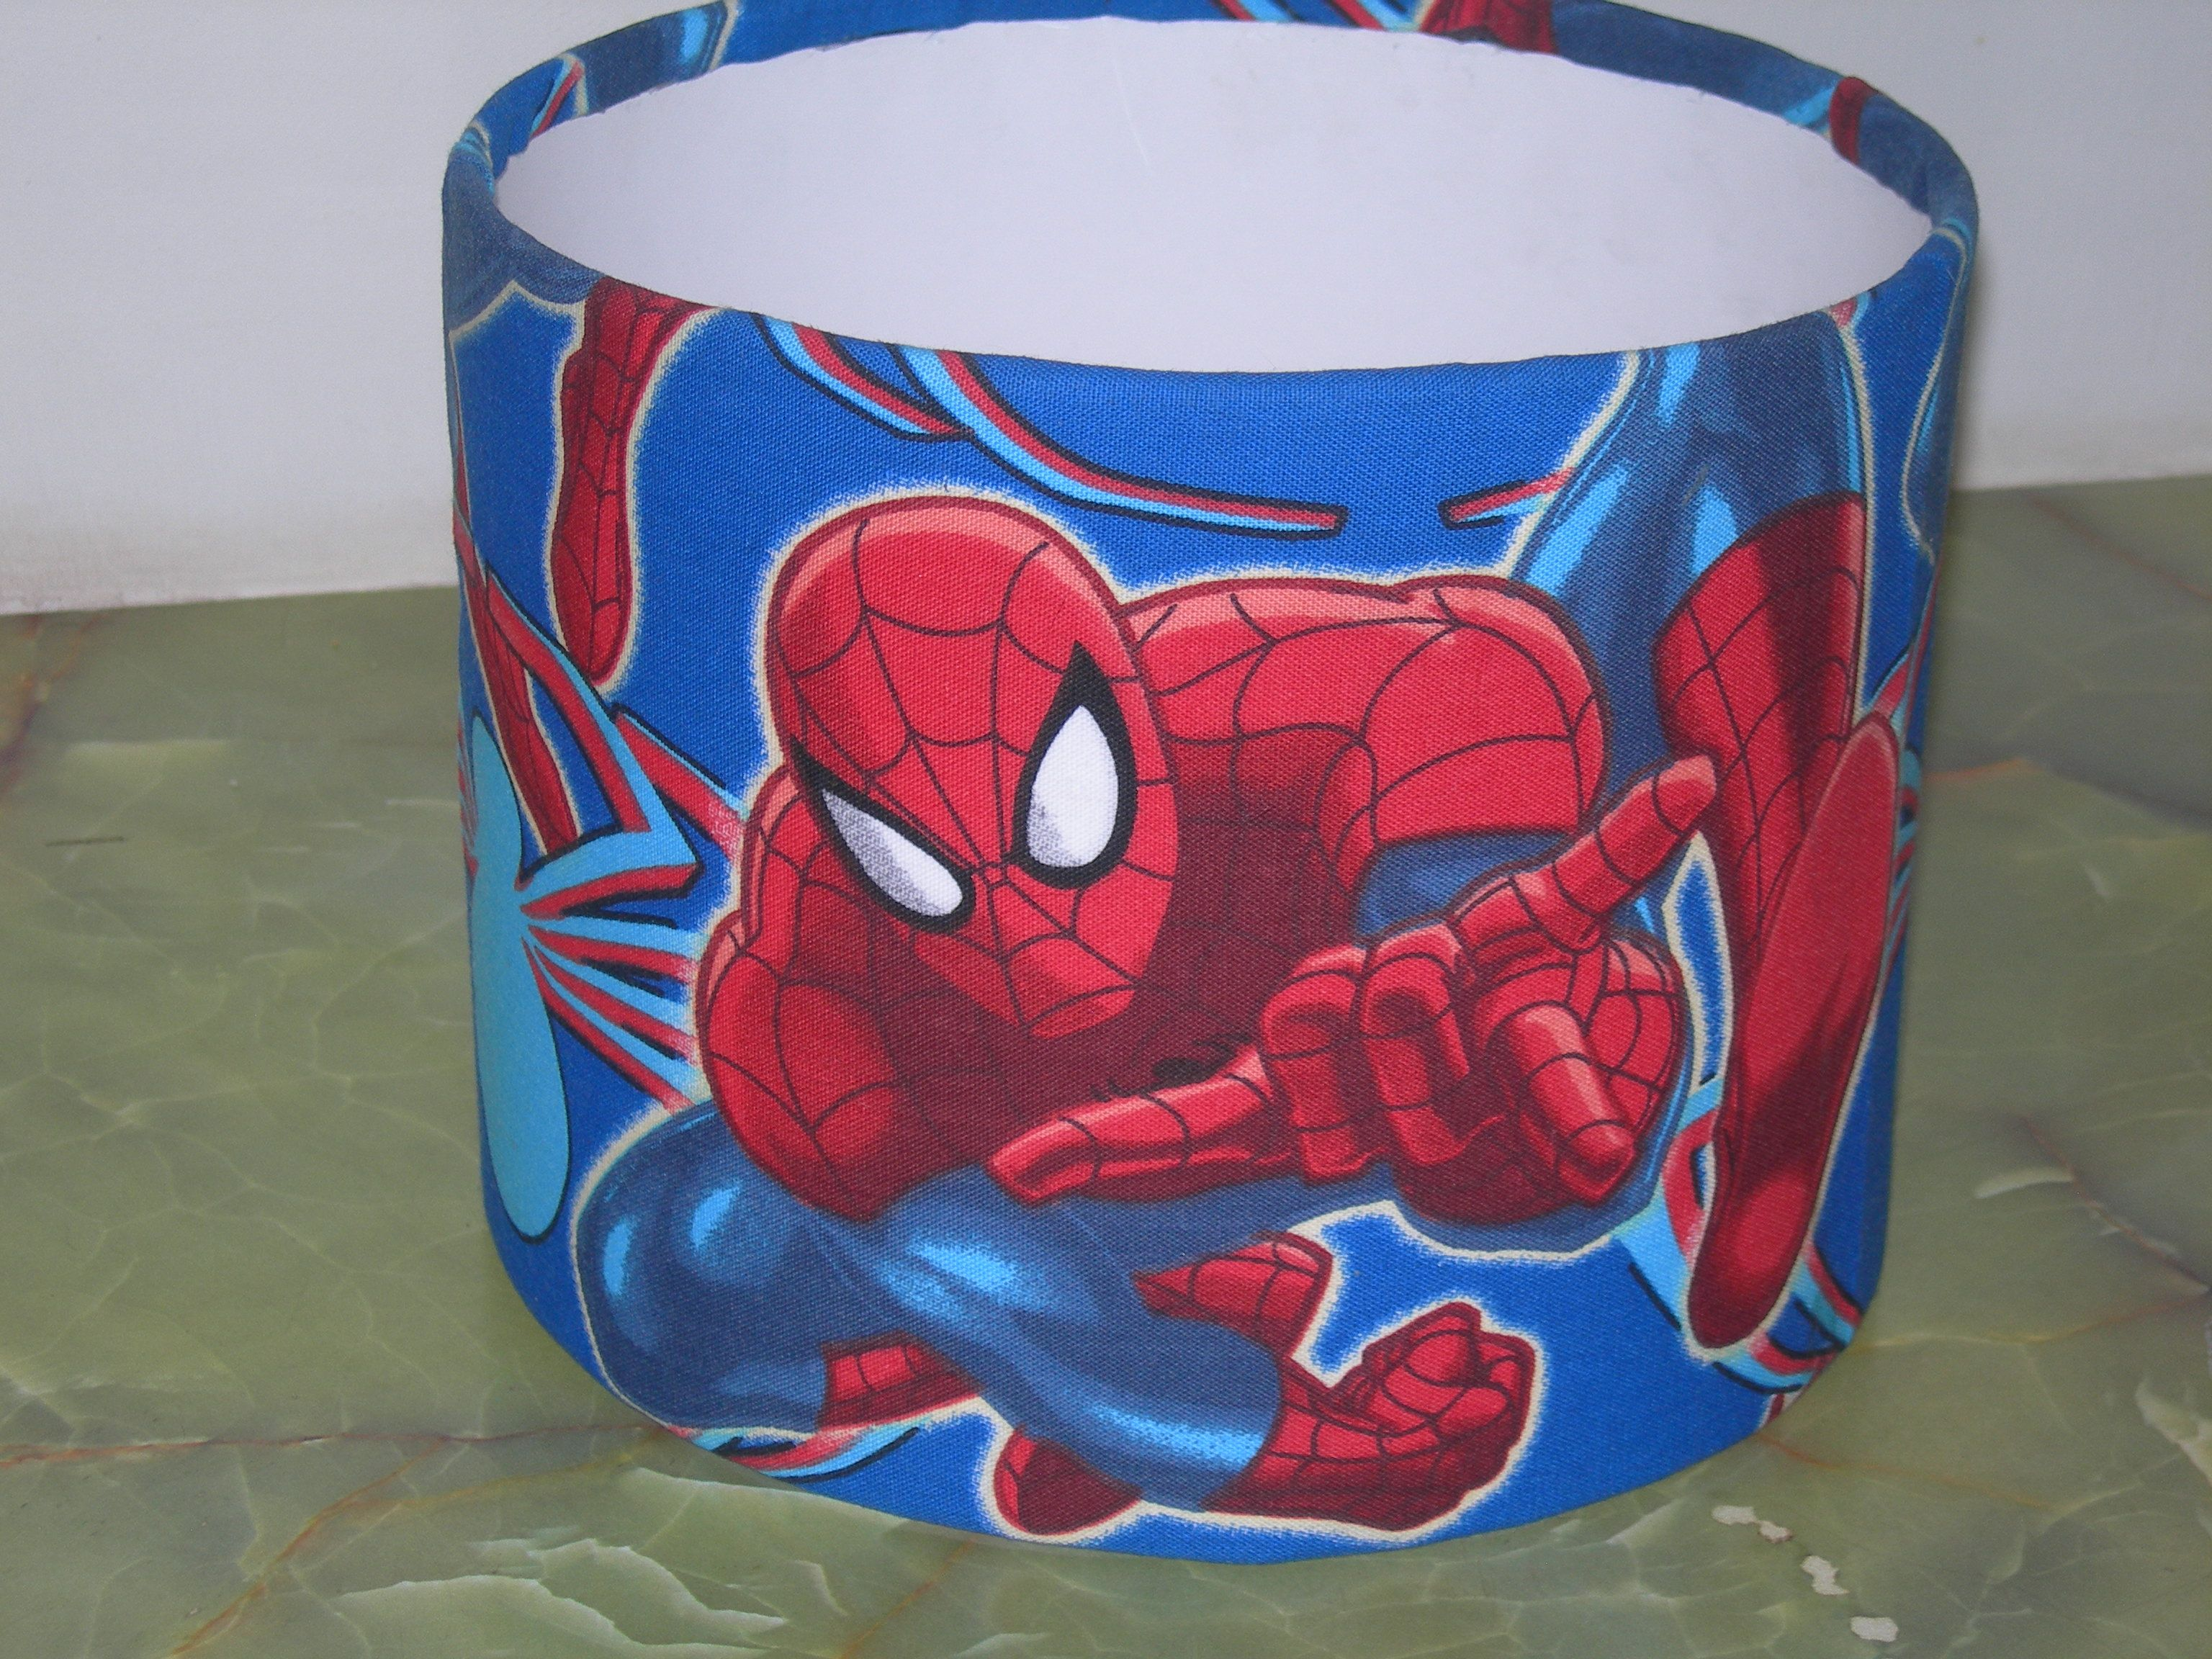 Covered spiderman lampshade for a friend's son's room makeover ...